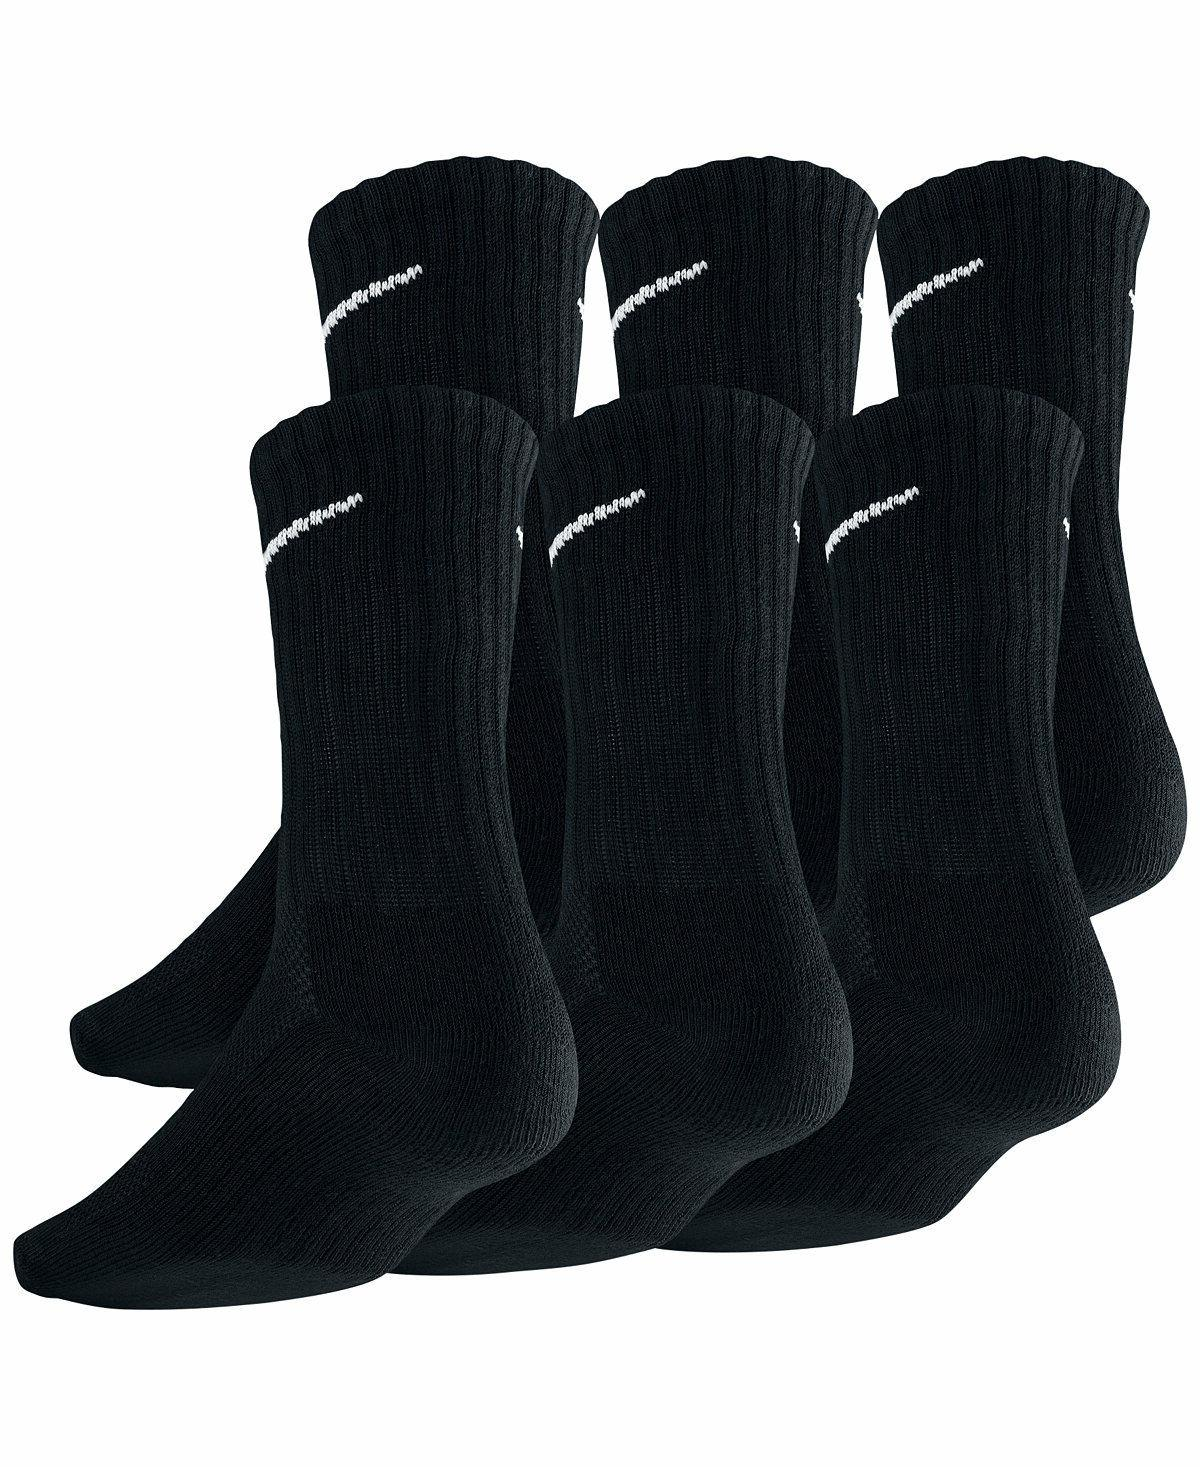 SALE NEW Dri Fit Dry Cotton Black Crew Socks Or Pair 8-12